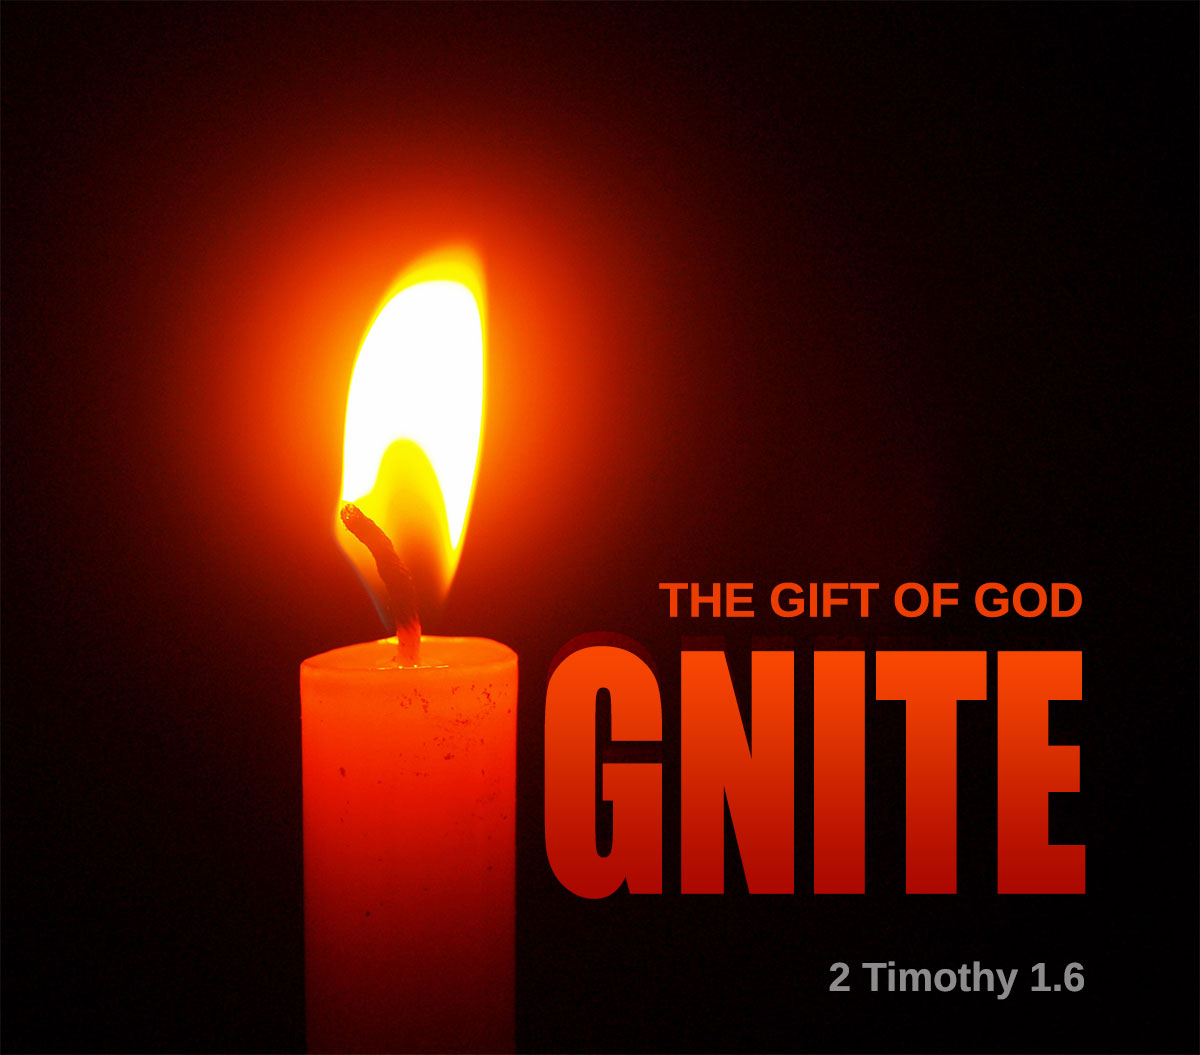 Ignite the gift of God in you - 2 Timothy 1.6